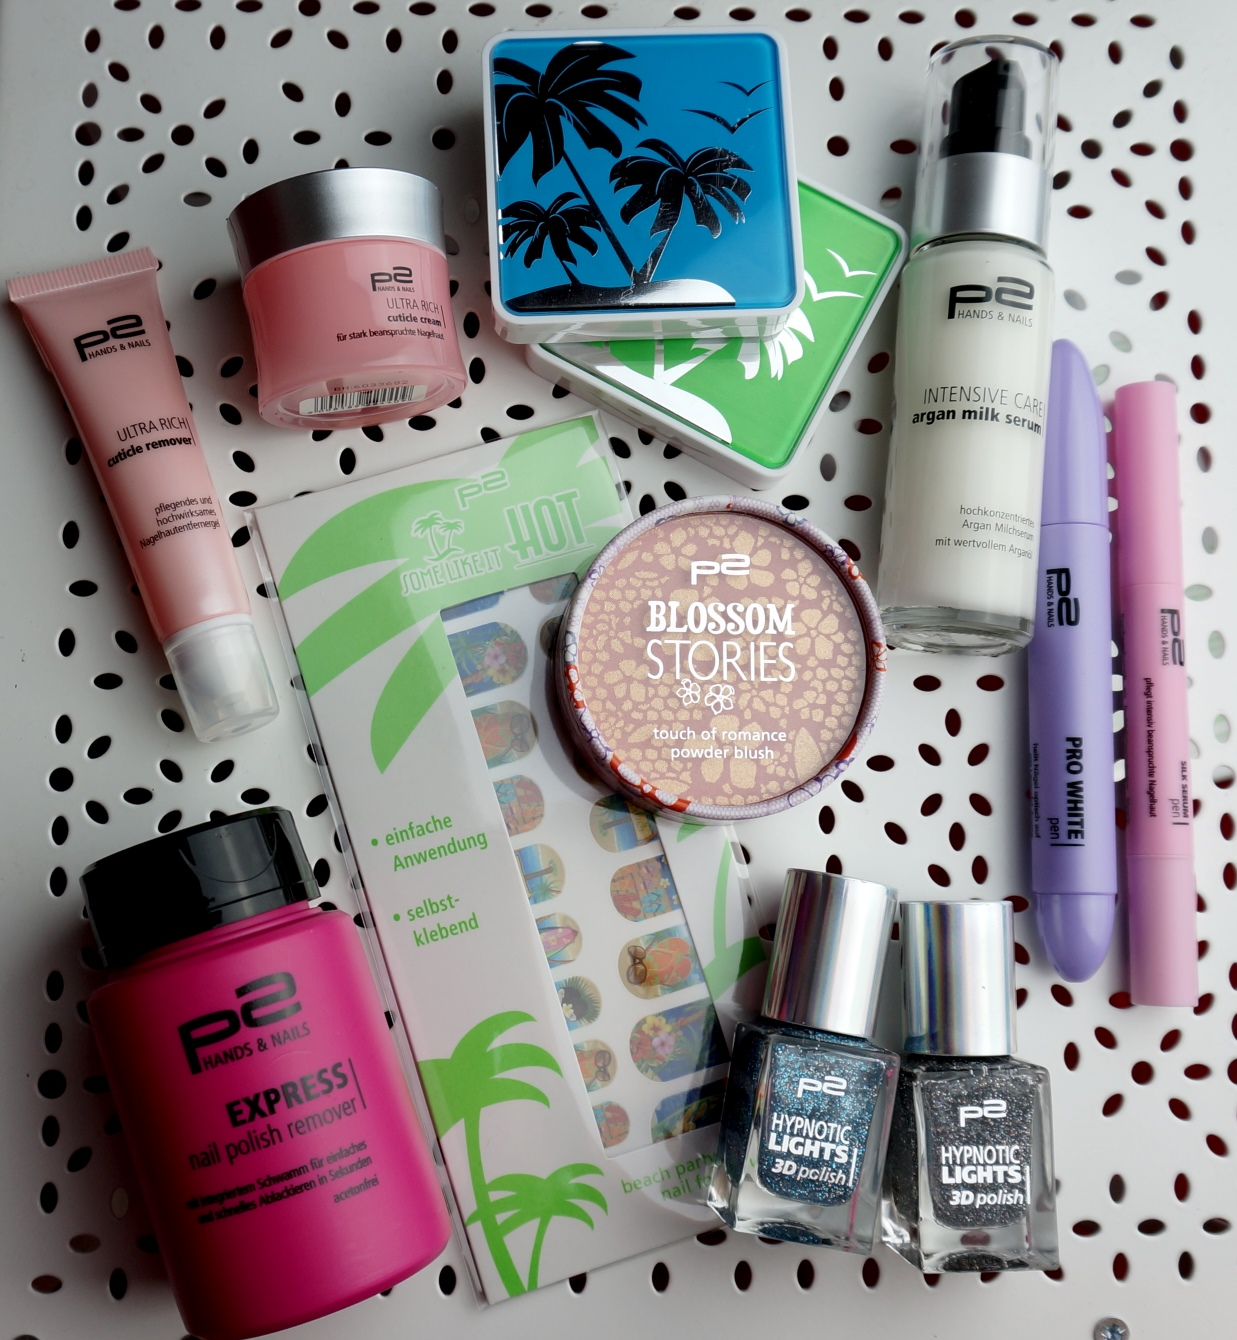 Shoppinghaul p2 cosmetics